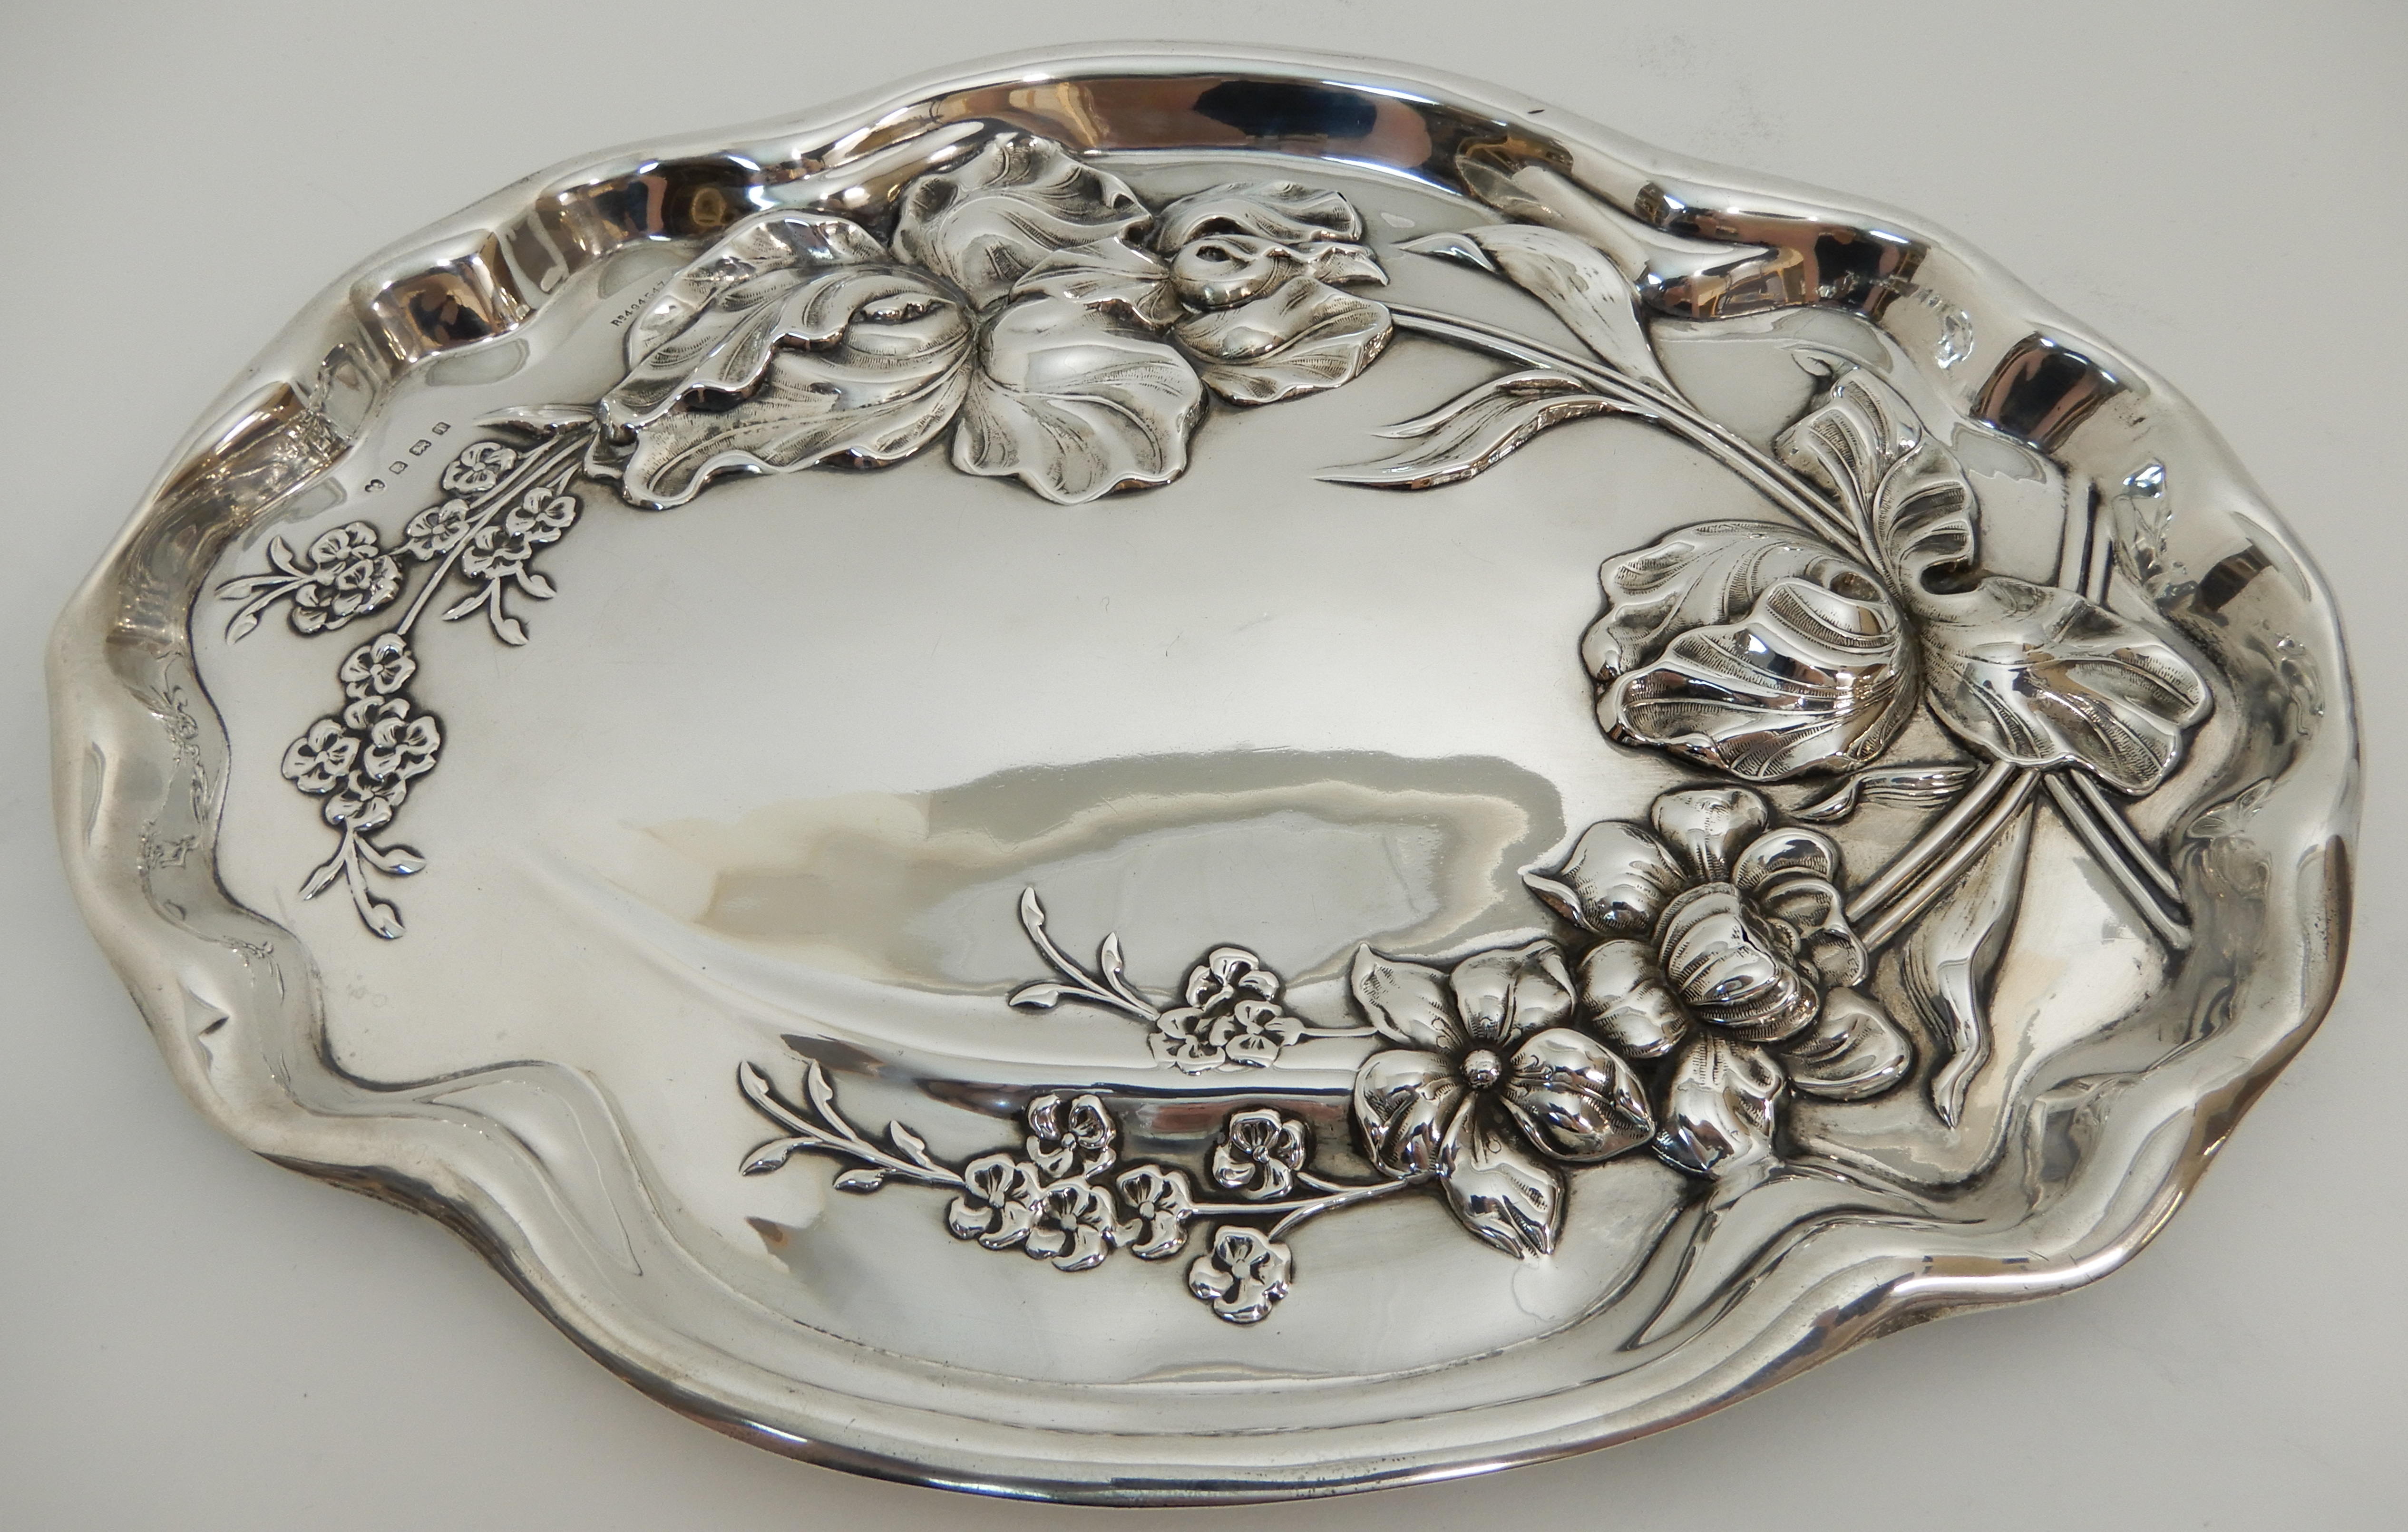 Lot 150 - AN EDWARDIAN SILVER TRAY by Williams (Birmingham) Limited, Birmingham 1908, of oval form with raised